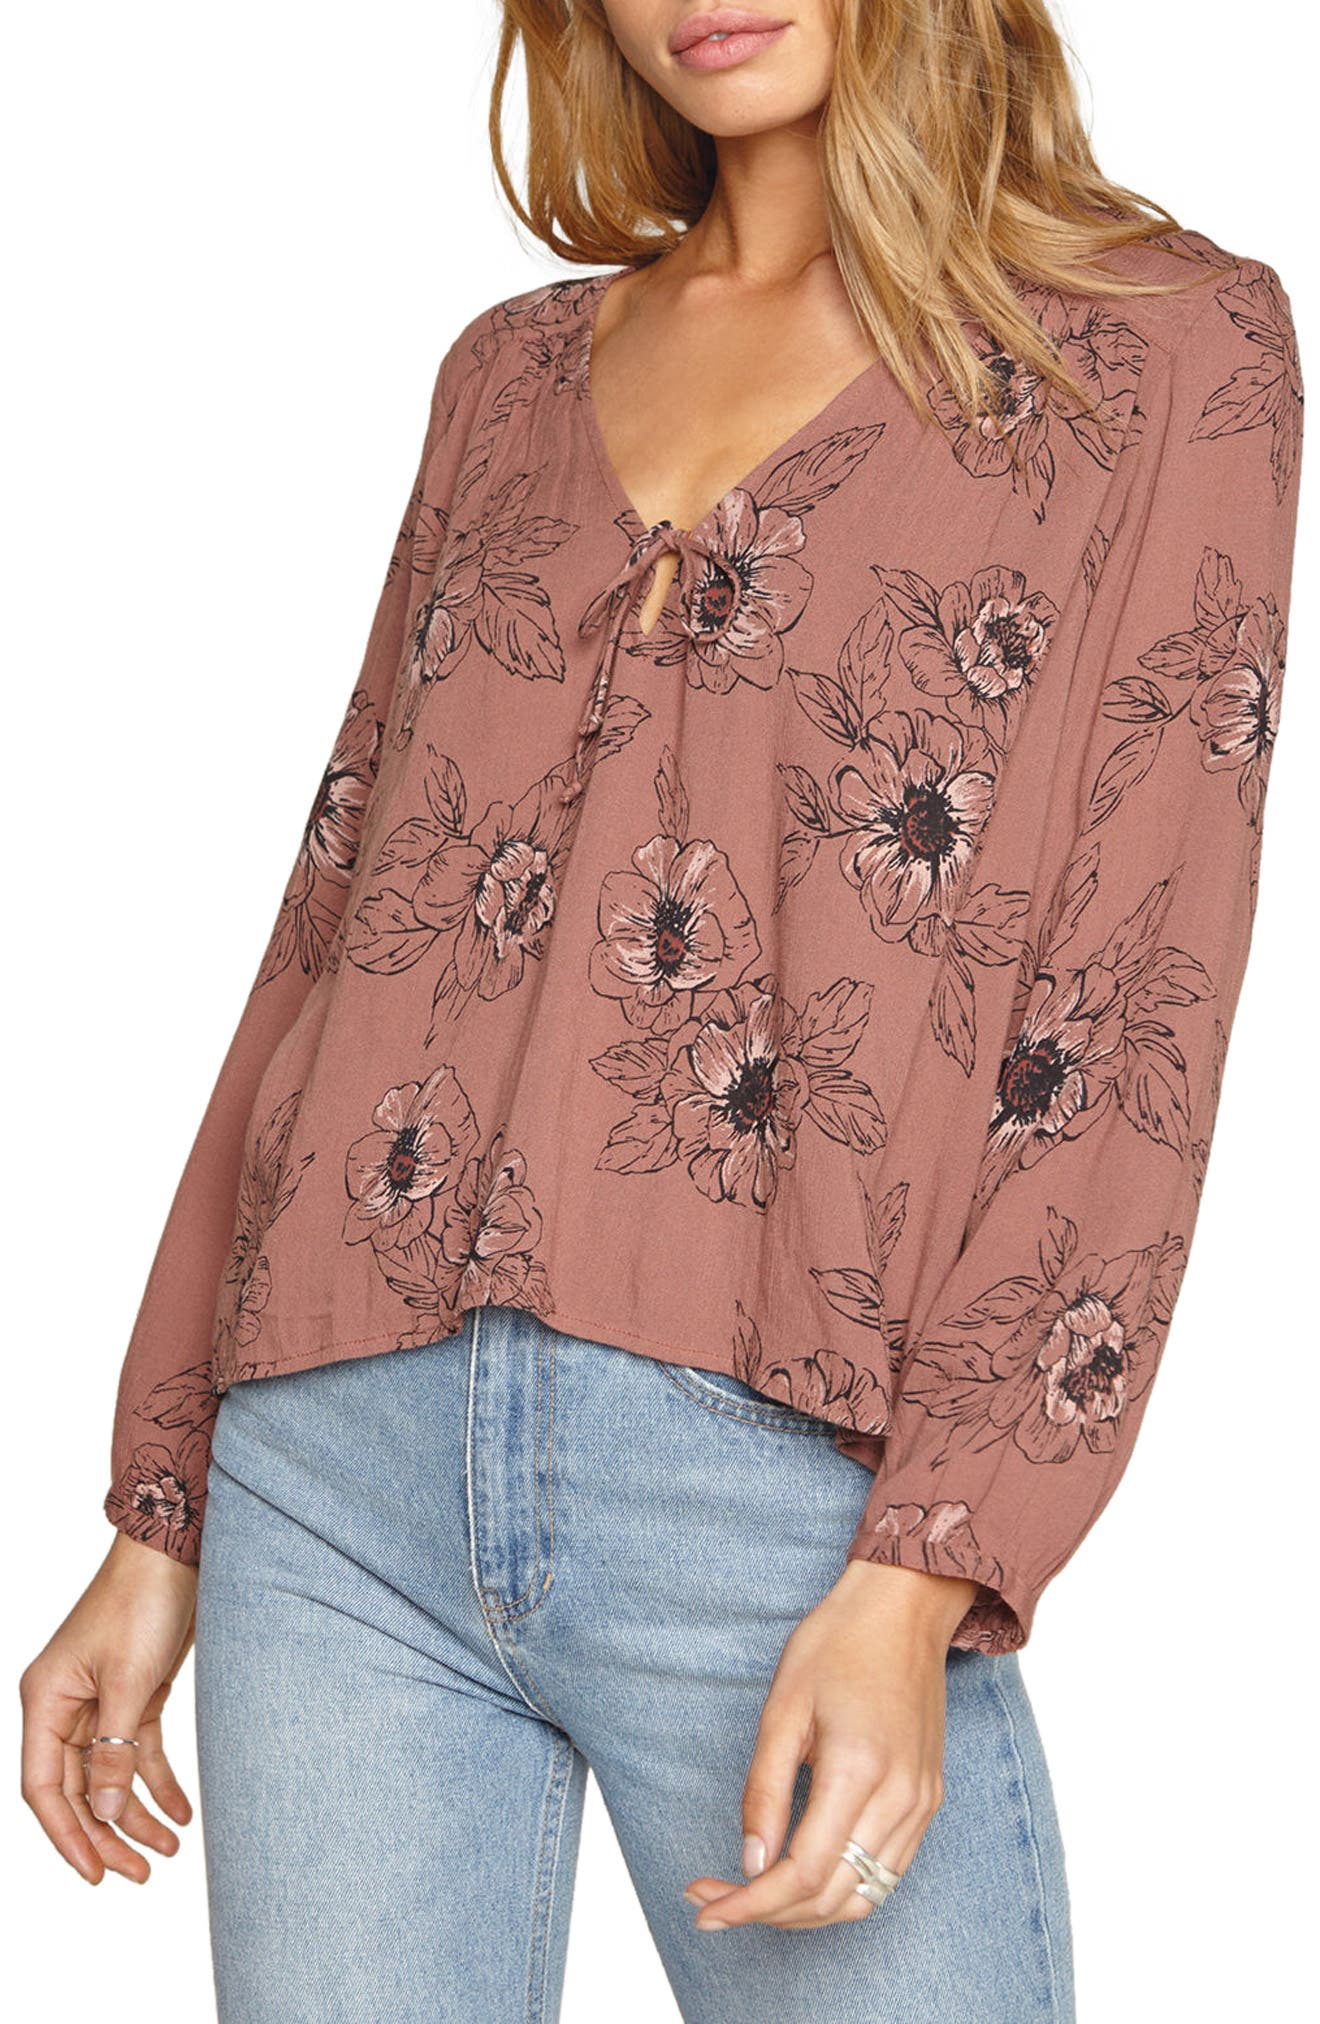 Bleeker Blouse,                         Main,                         color, Moccasin